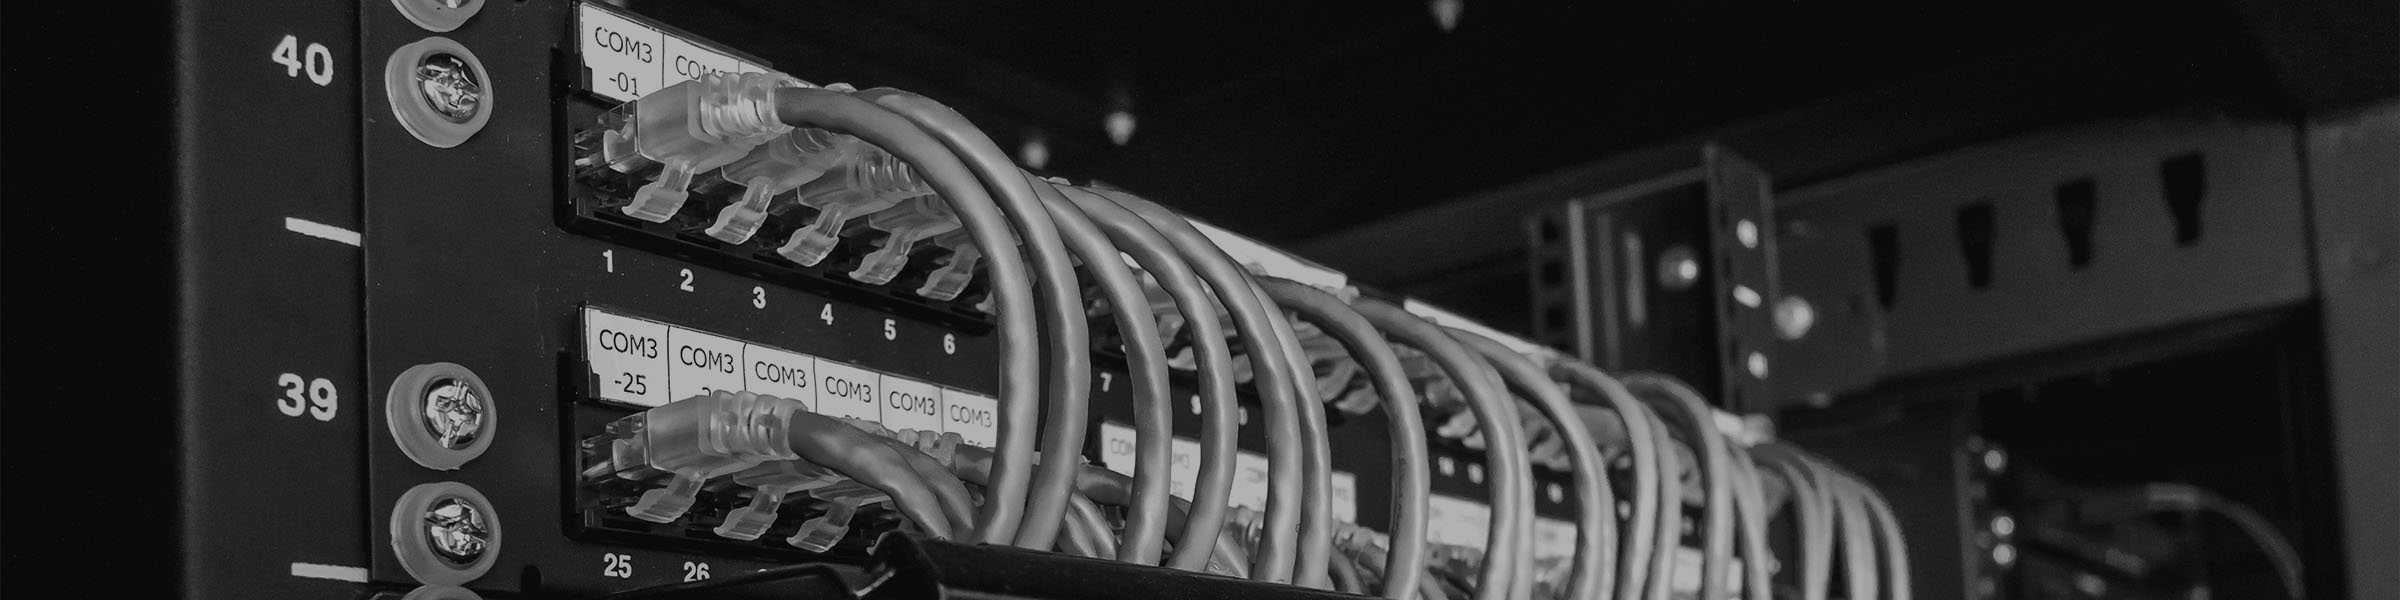 Cables on the bottom of a server